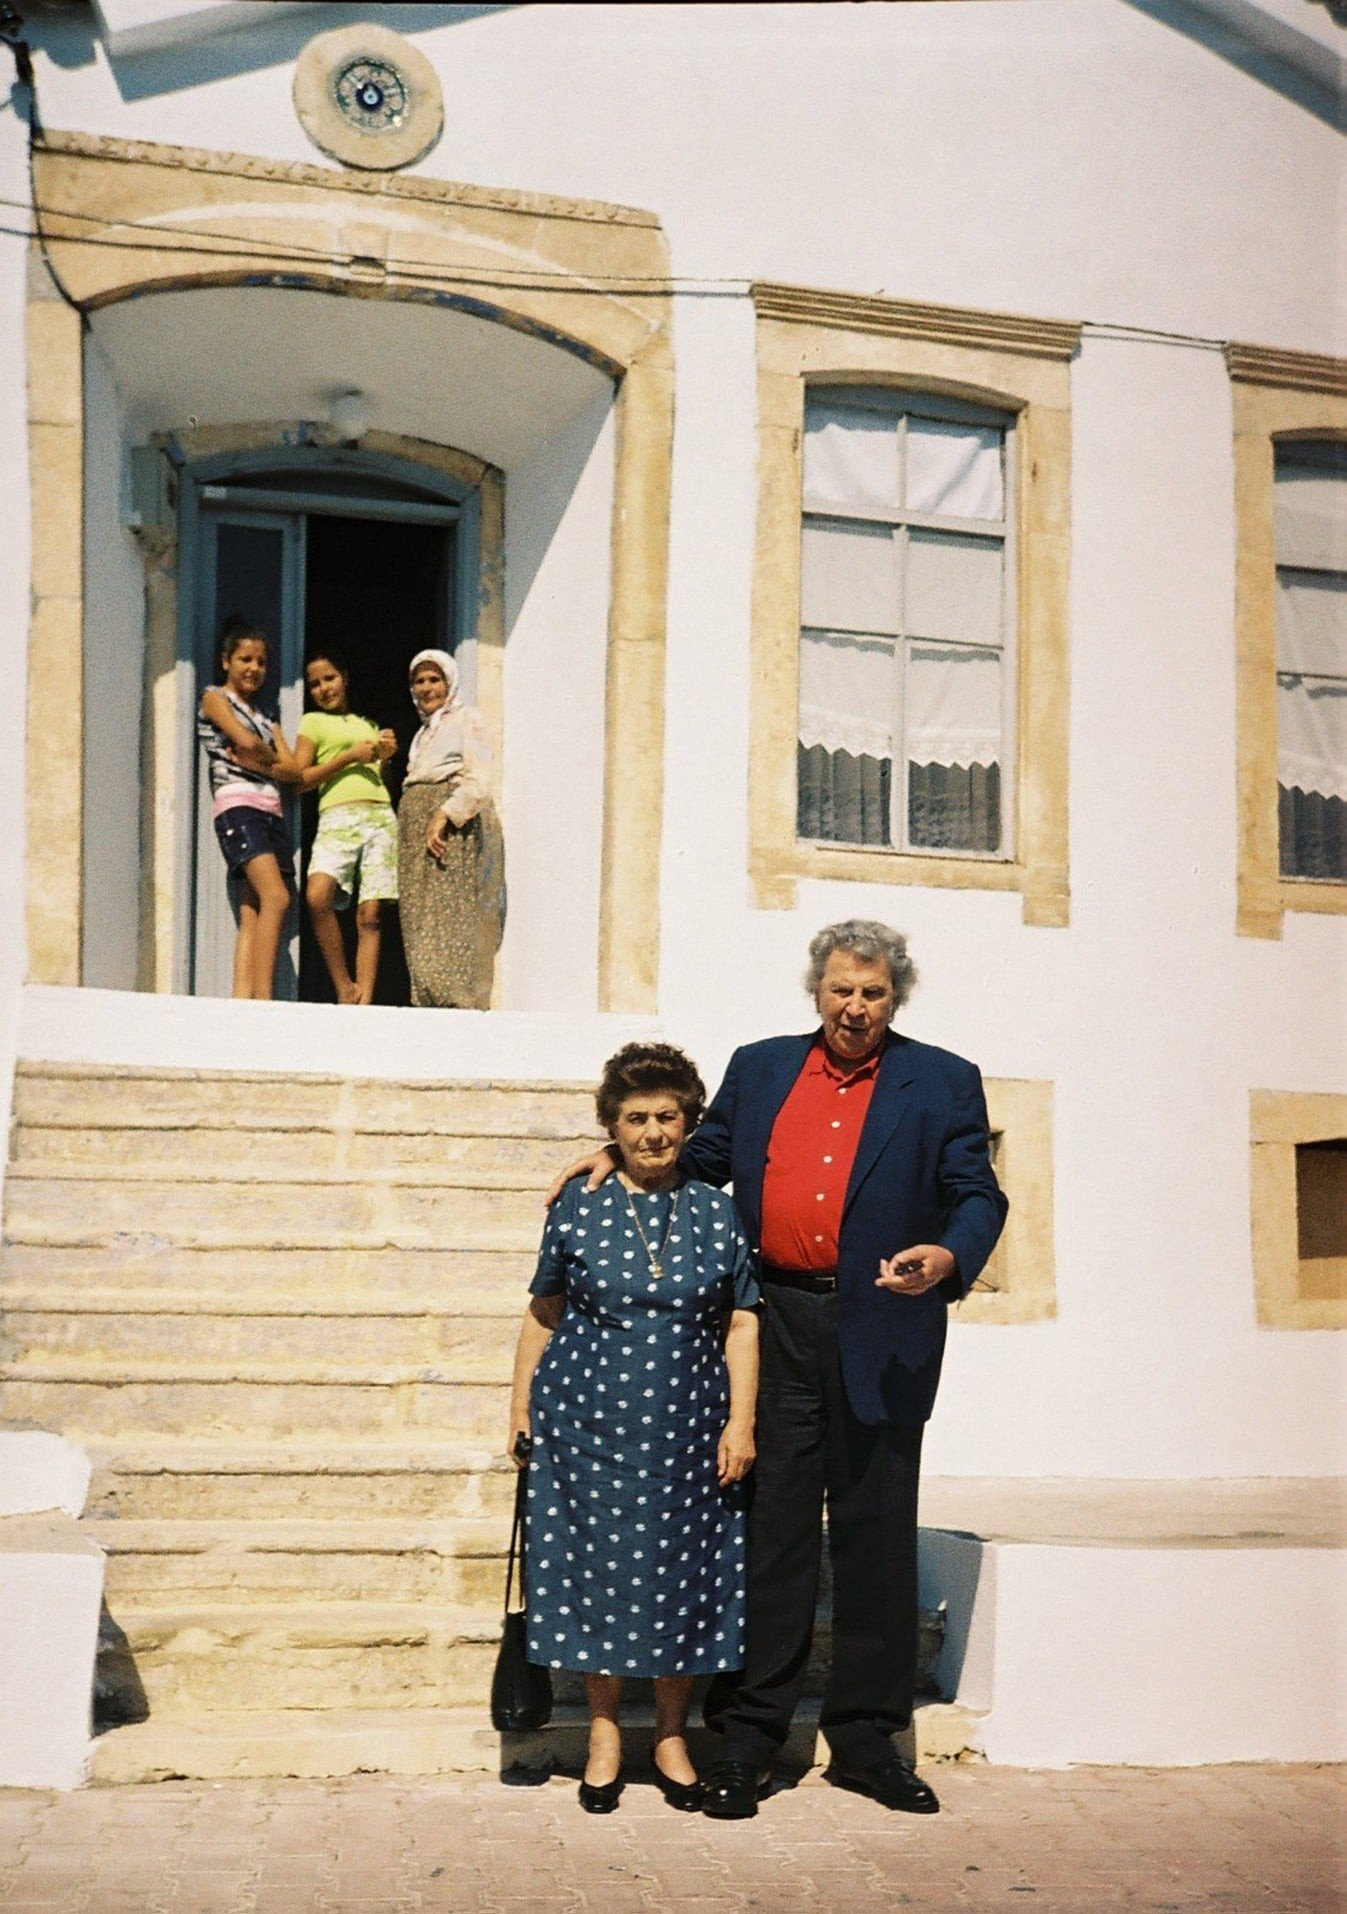 This file photo provided on Sept. 3, 2021, shows Mikis Theodorakis and his wife posing in front of his mother's former house in Çeşme, western Turkey. (IHA Photo)